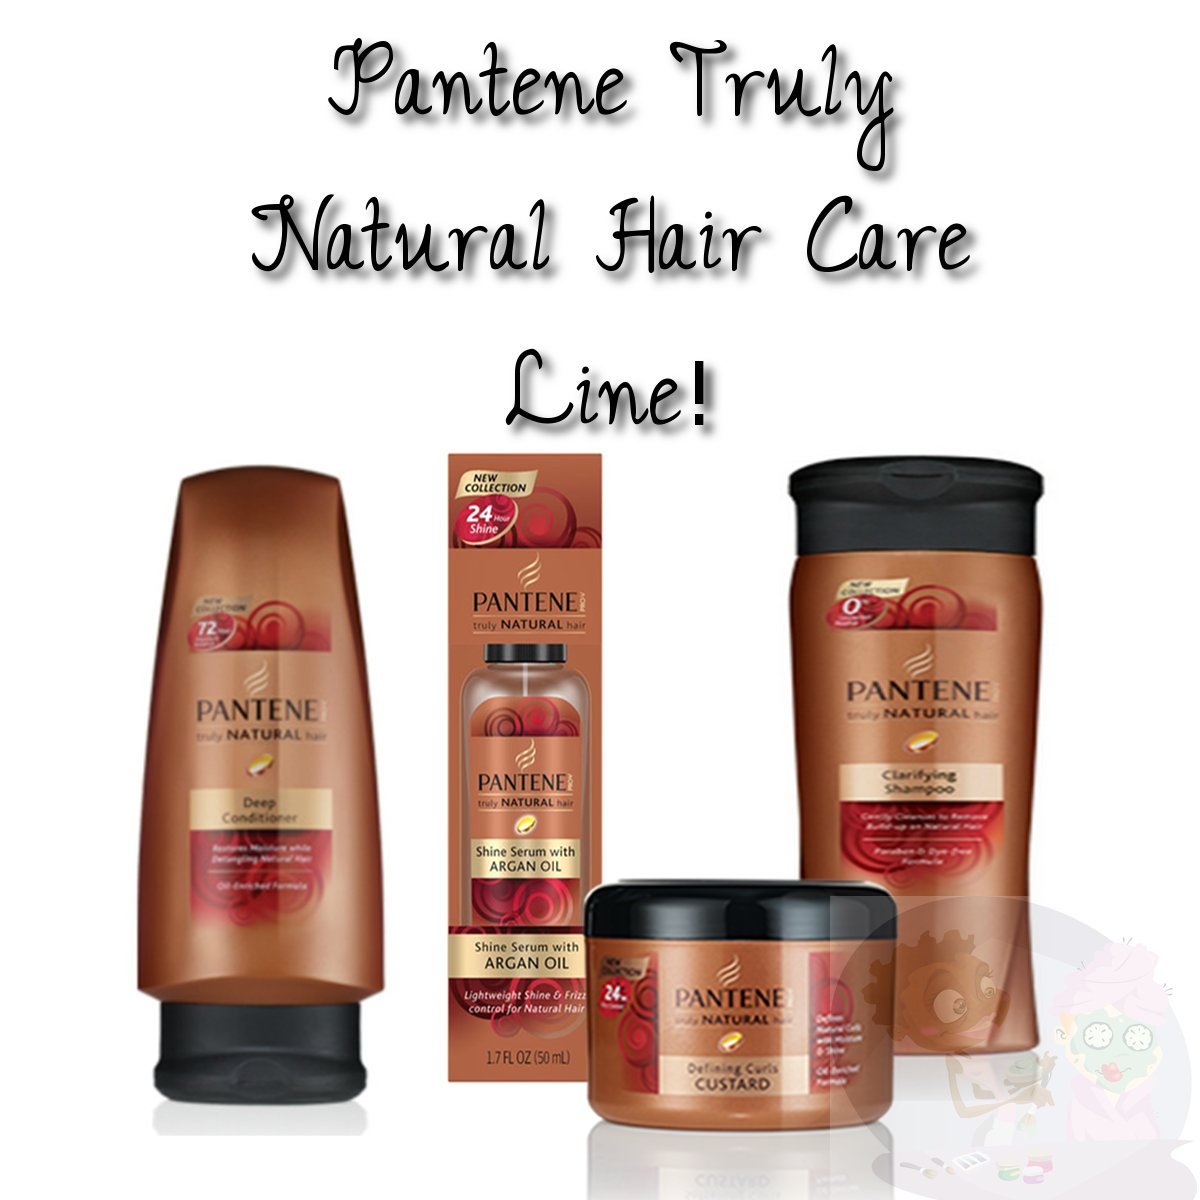 Pantene Natural Hair Care Line